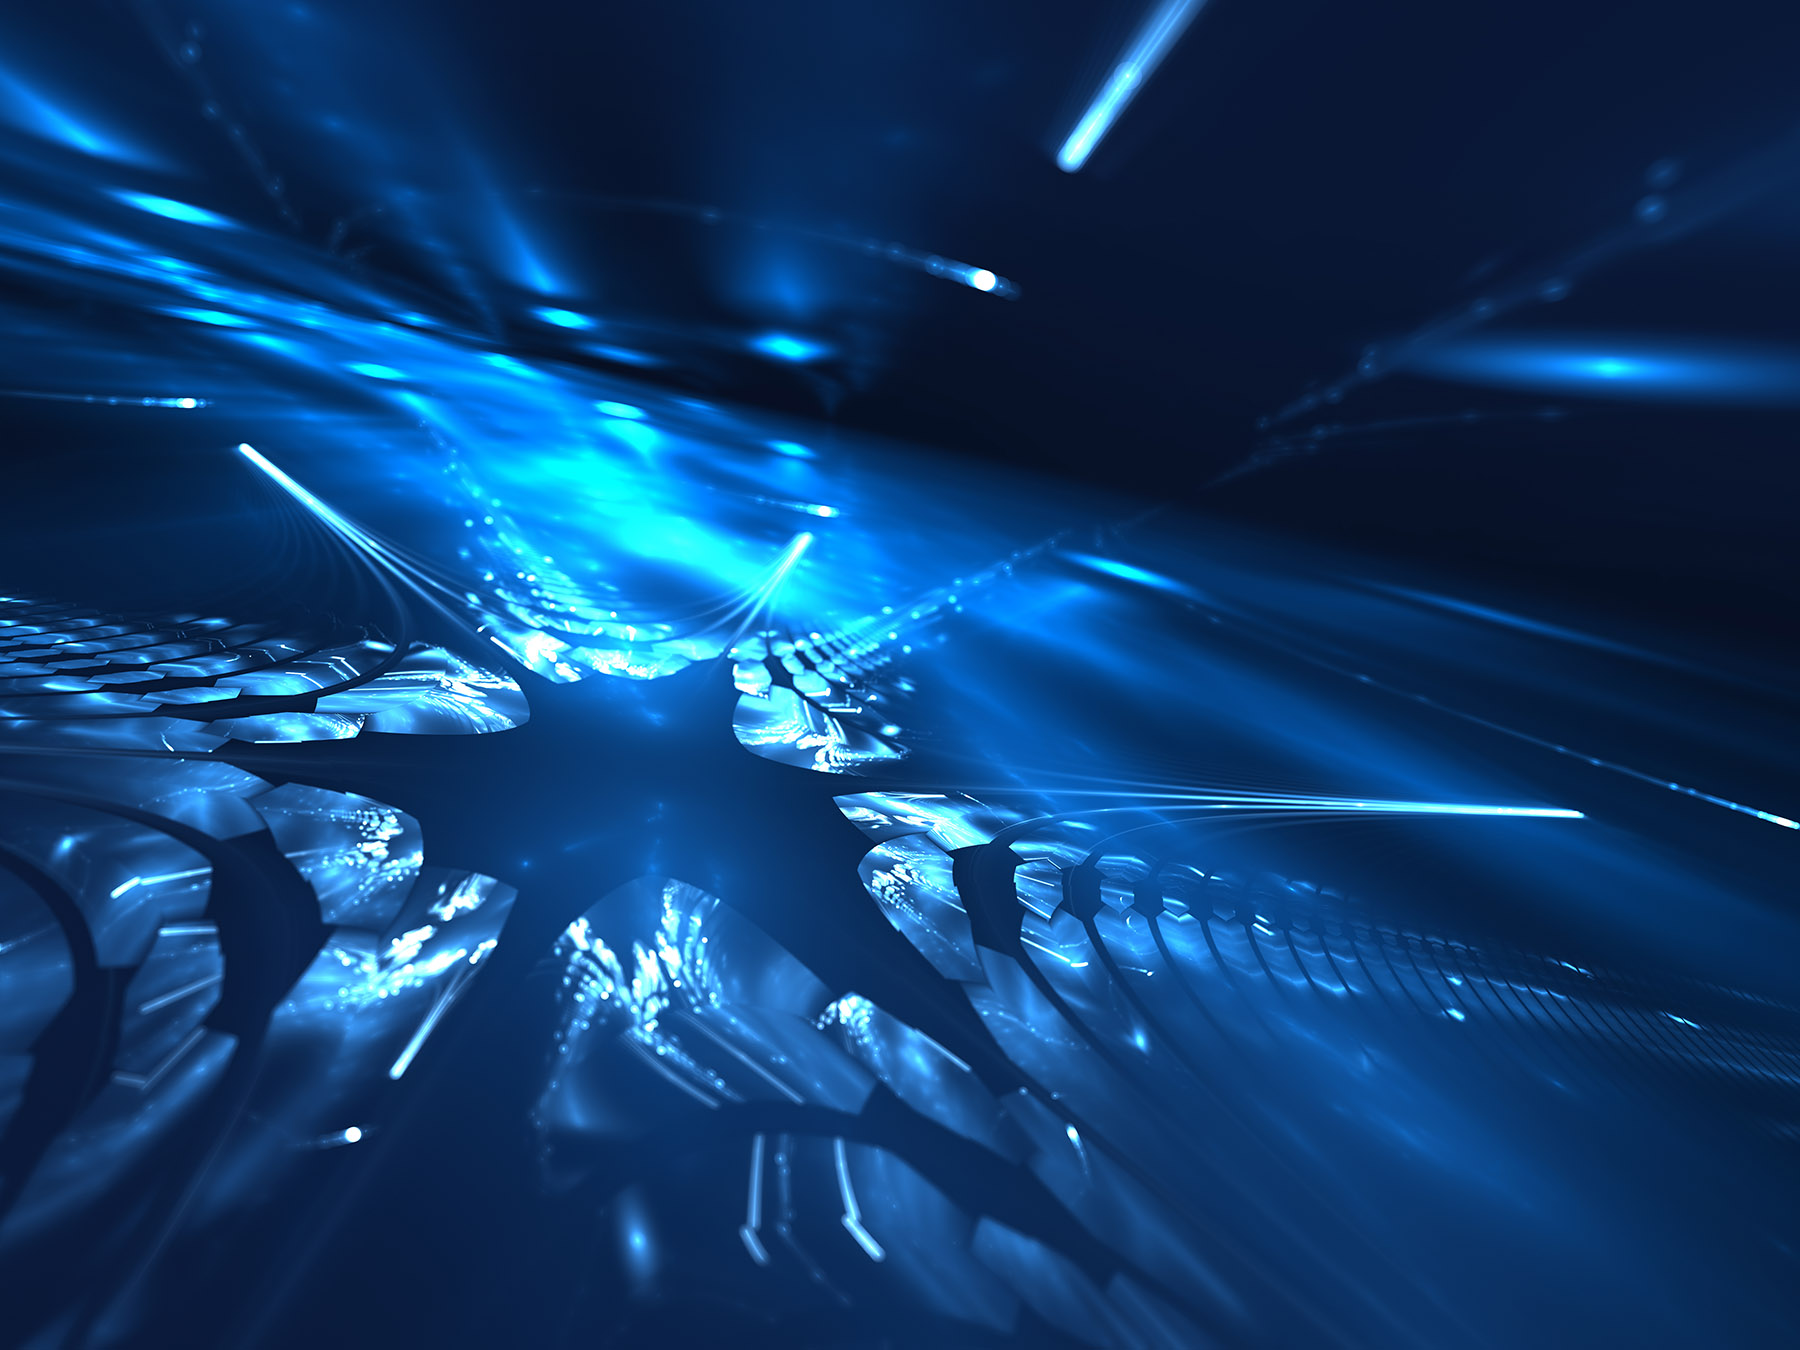 Image of blue abstract data burst